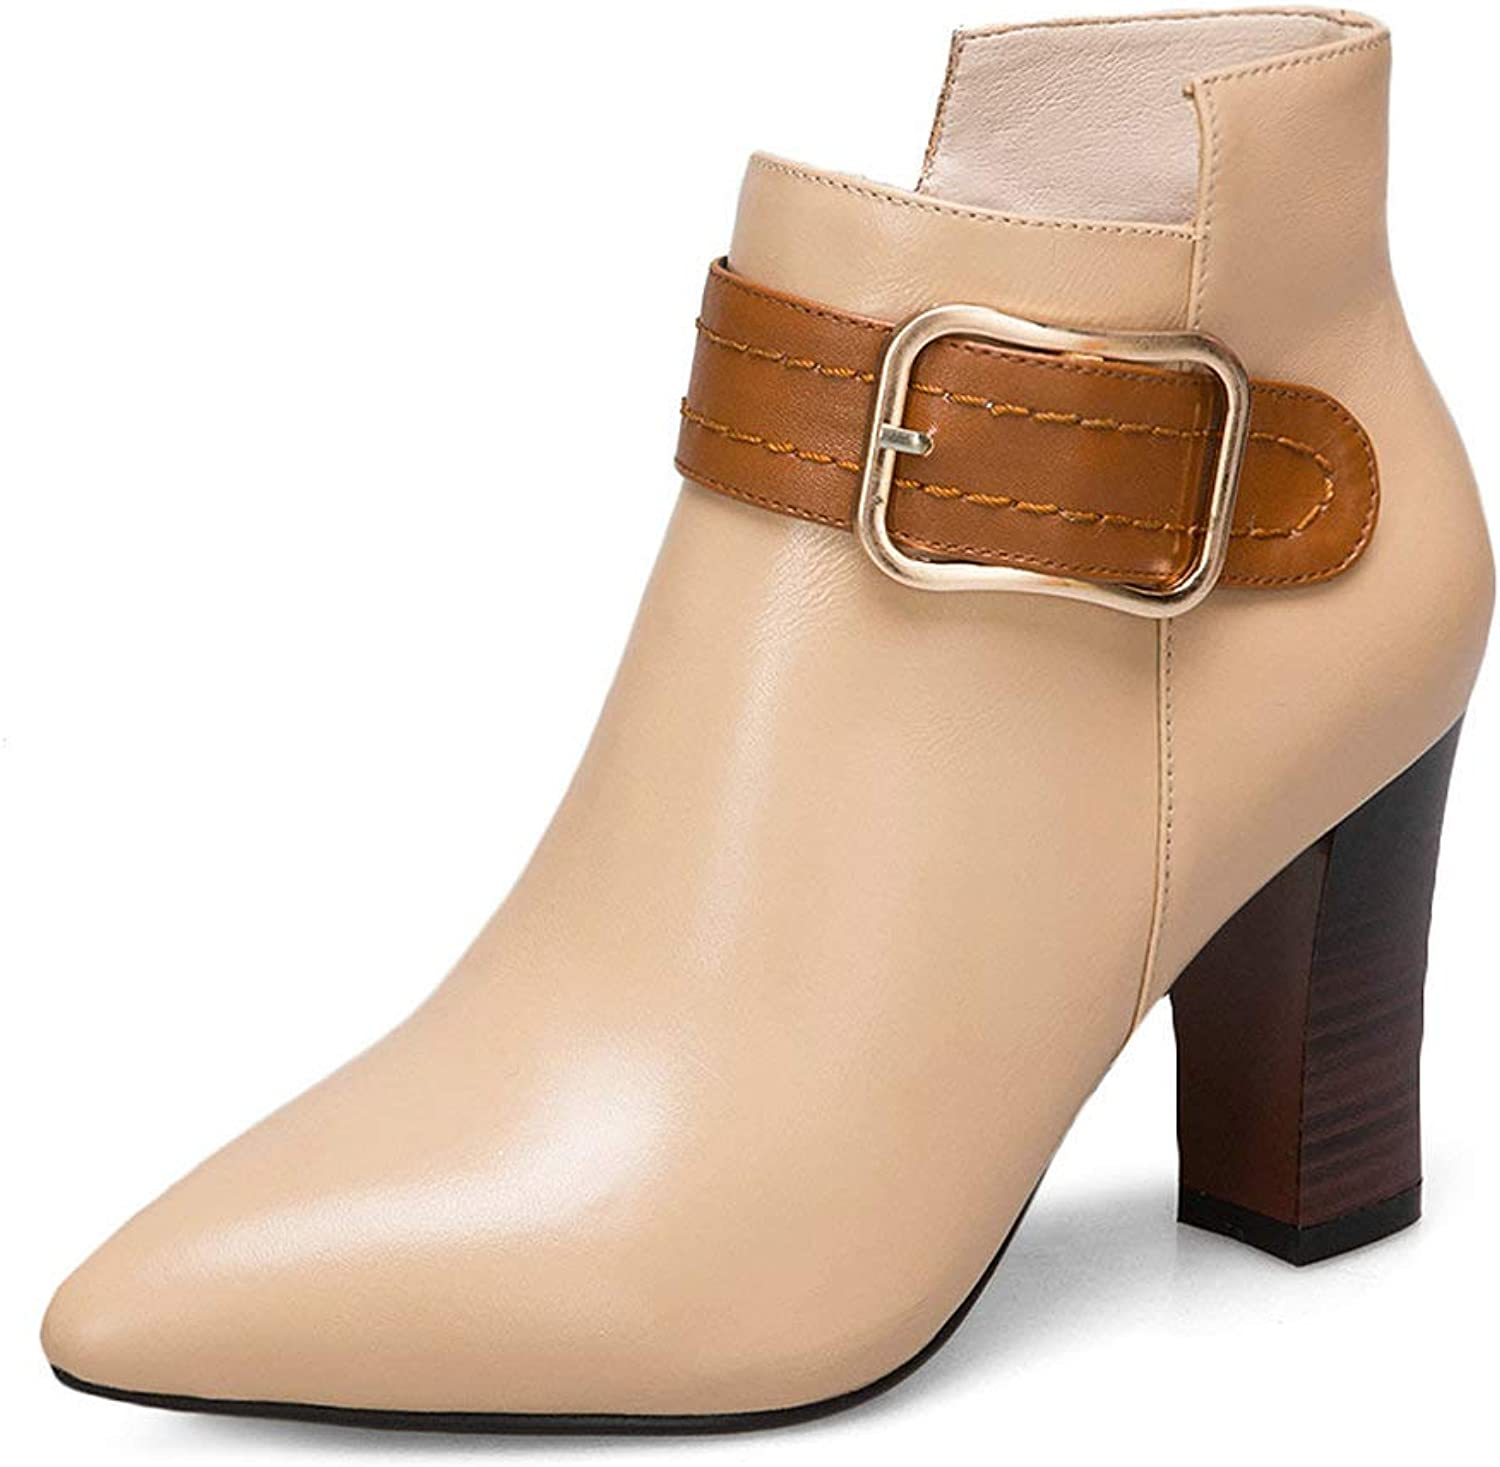 AnMengXinLing Block High Heel Ankle Boot Women Buckle Strap Pointed Toe Genuine Leather Winter Pumps Party Dress Evening shoes Size